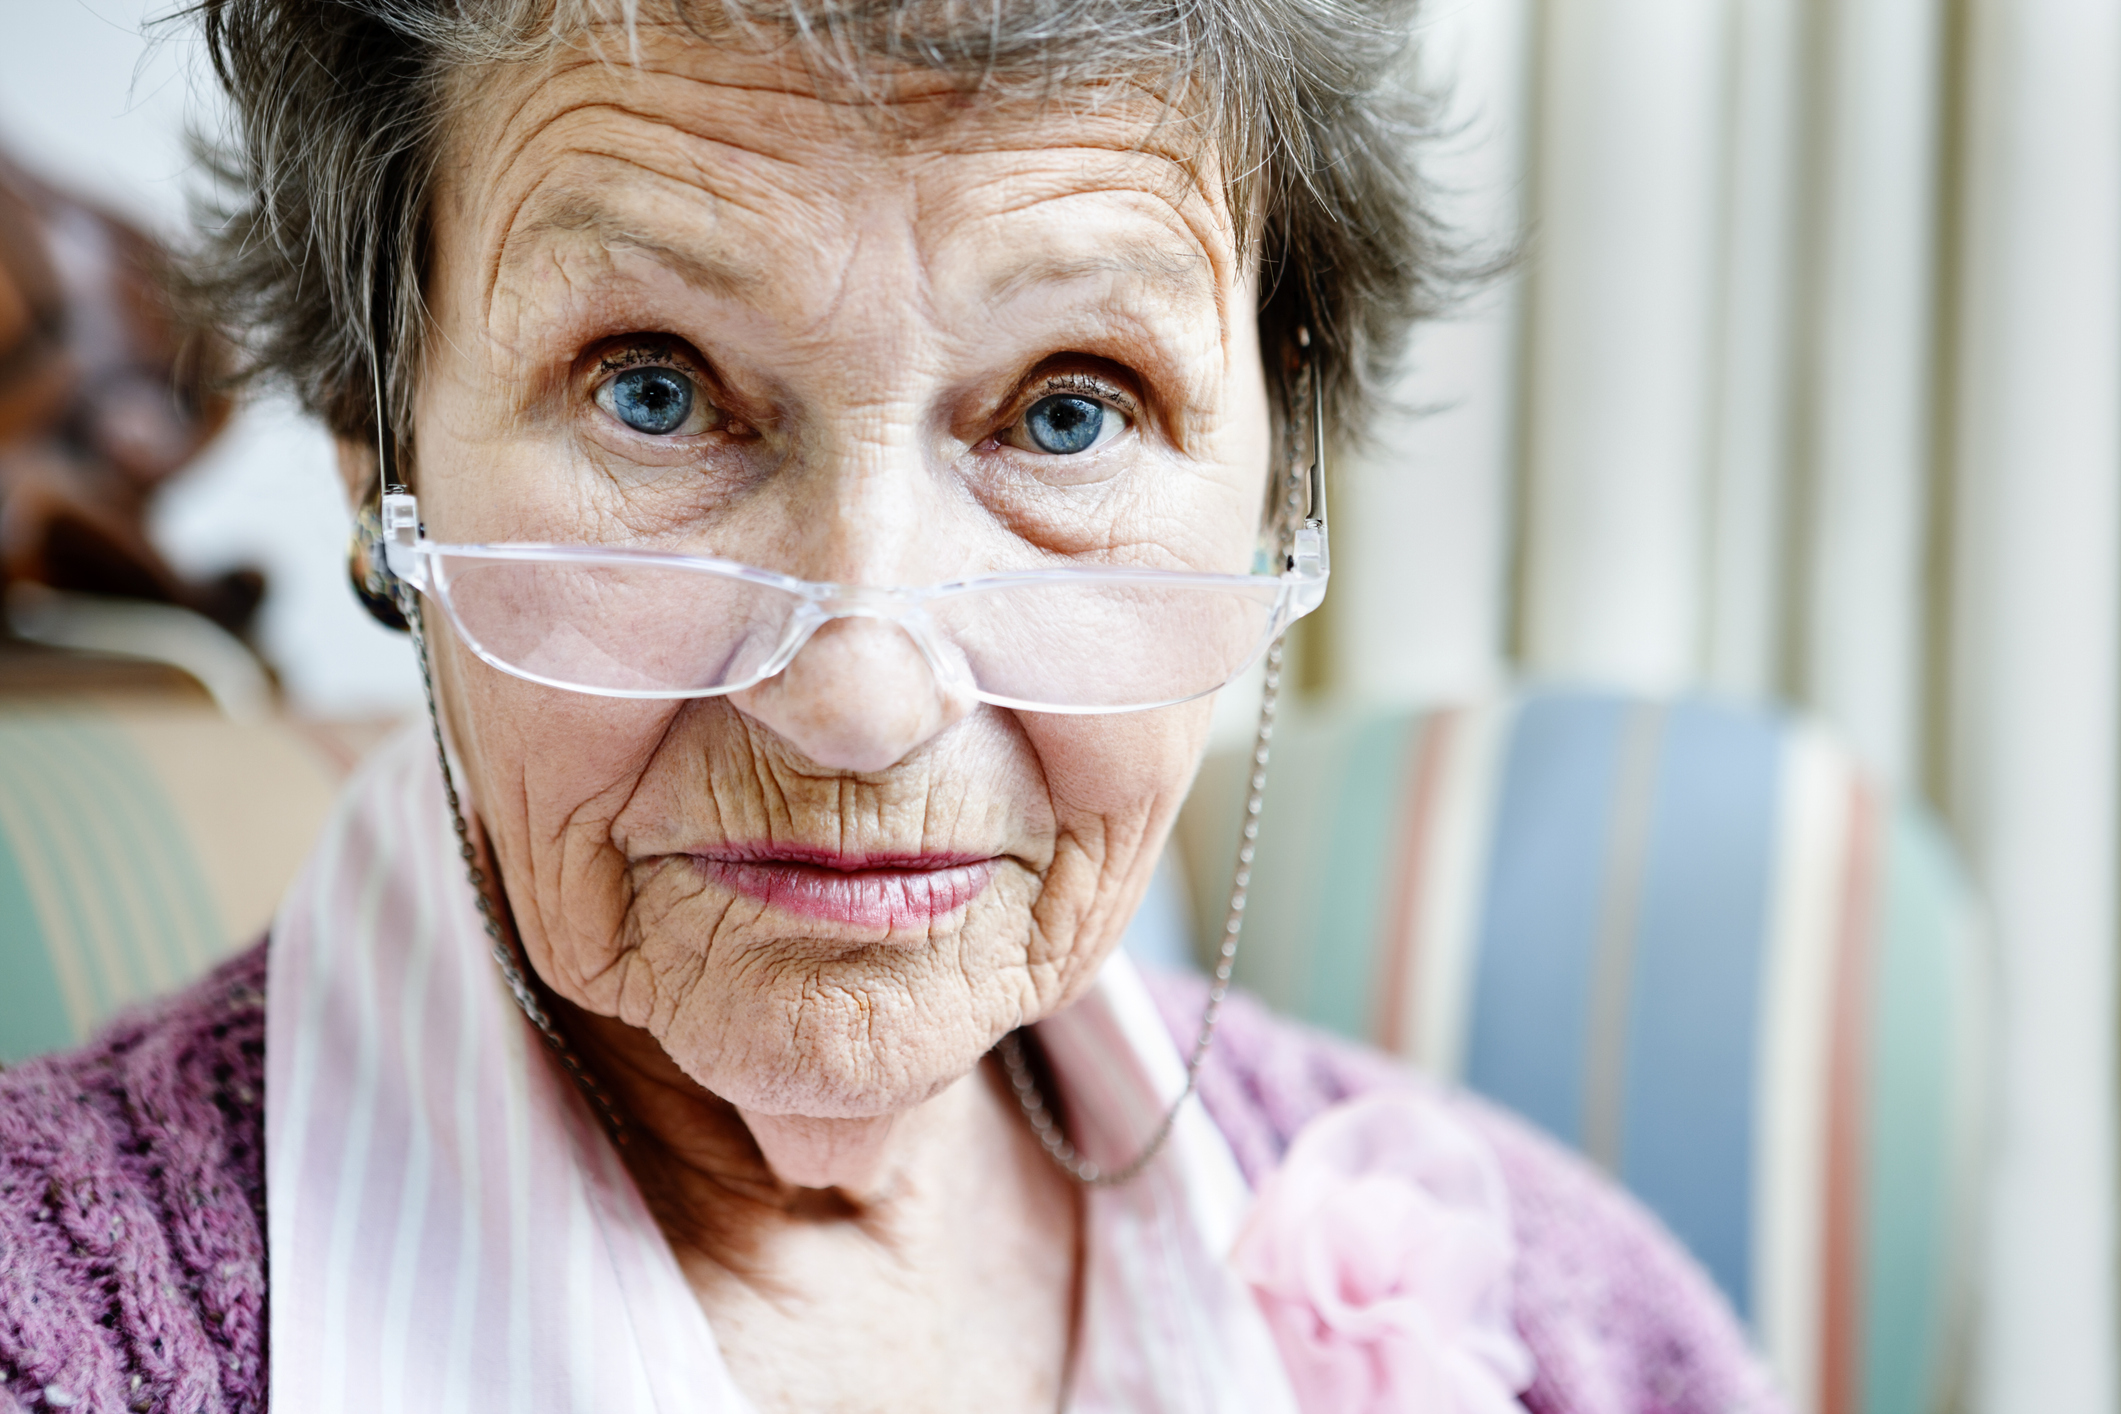 Old lady looks over spectacles with eyebrows raised.